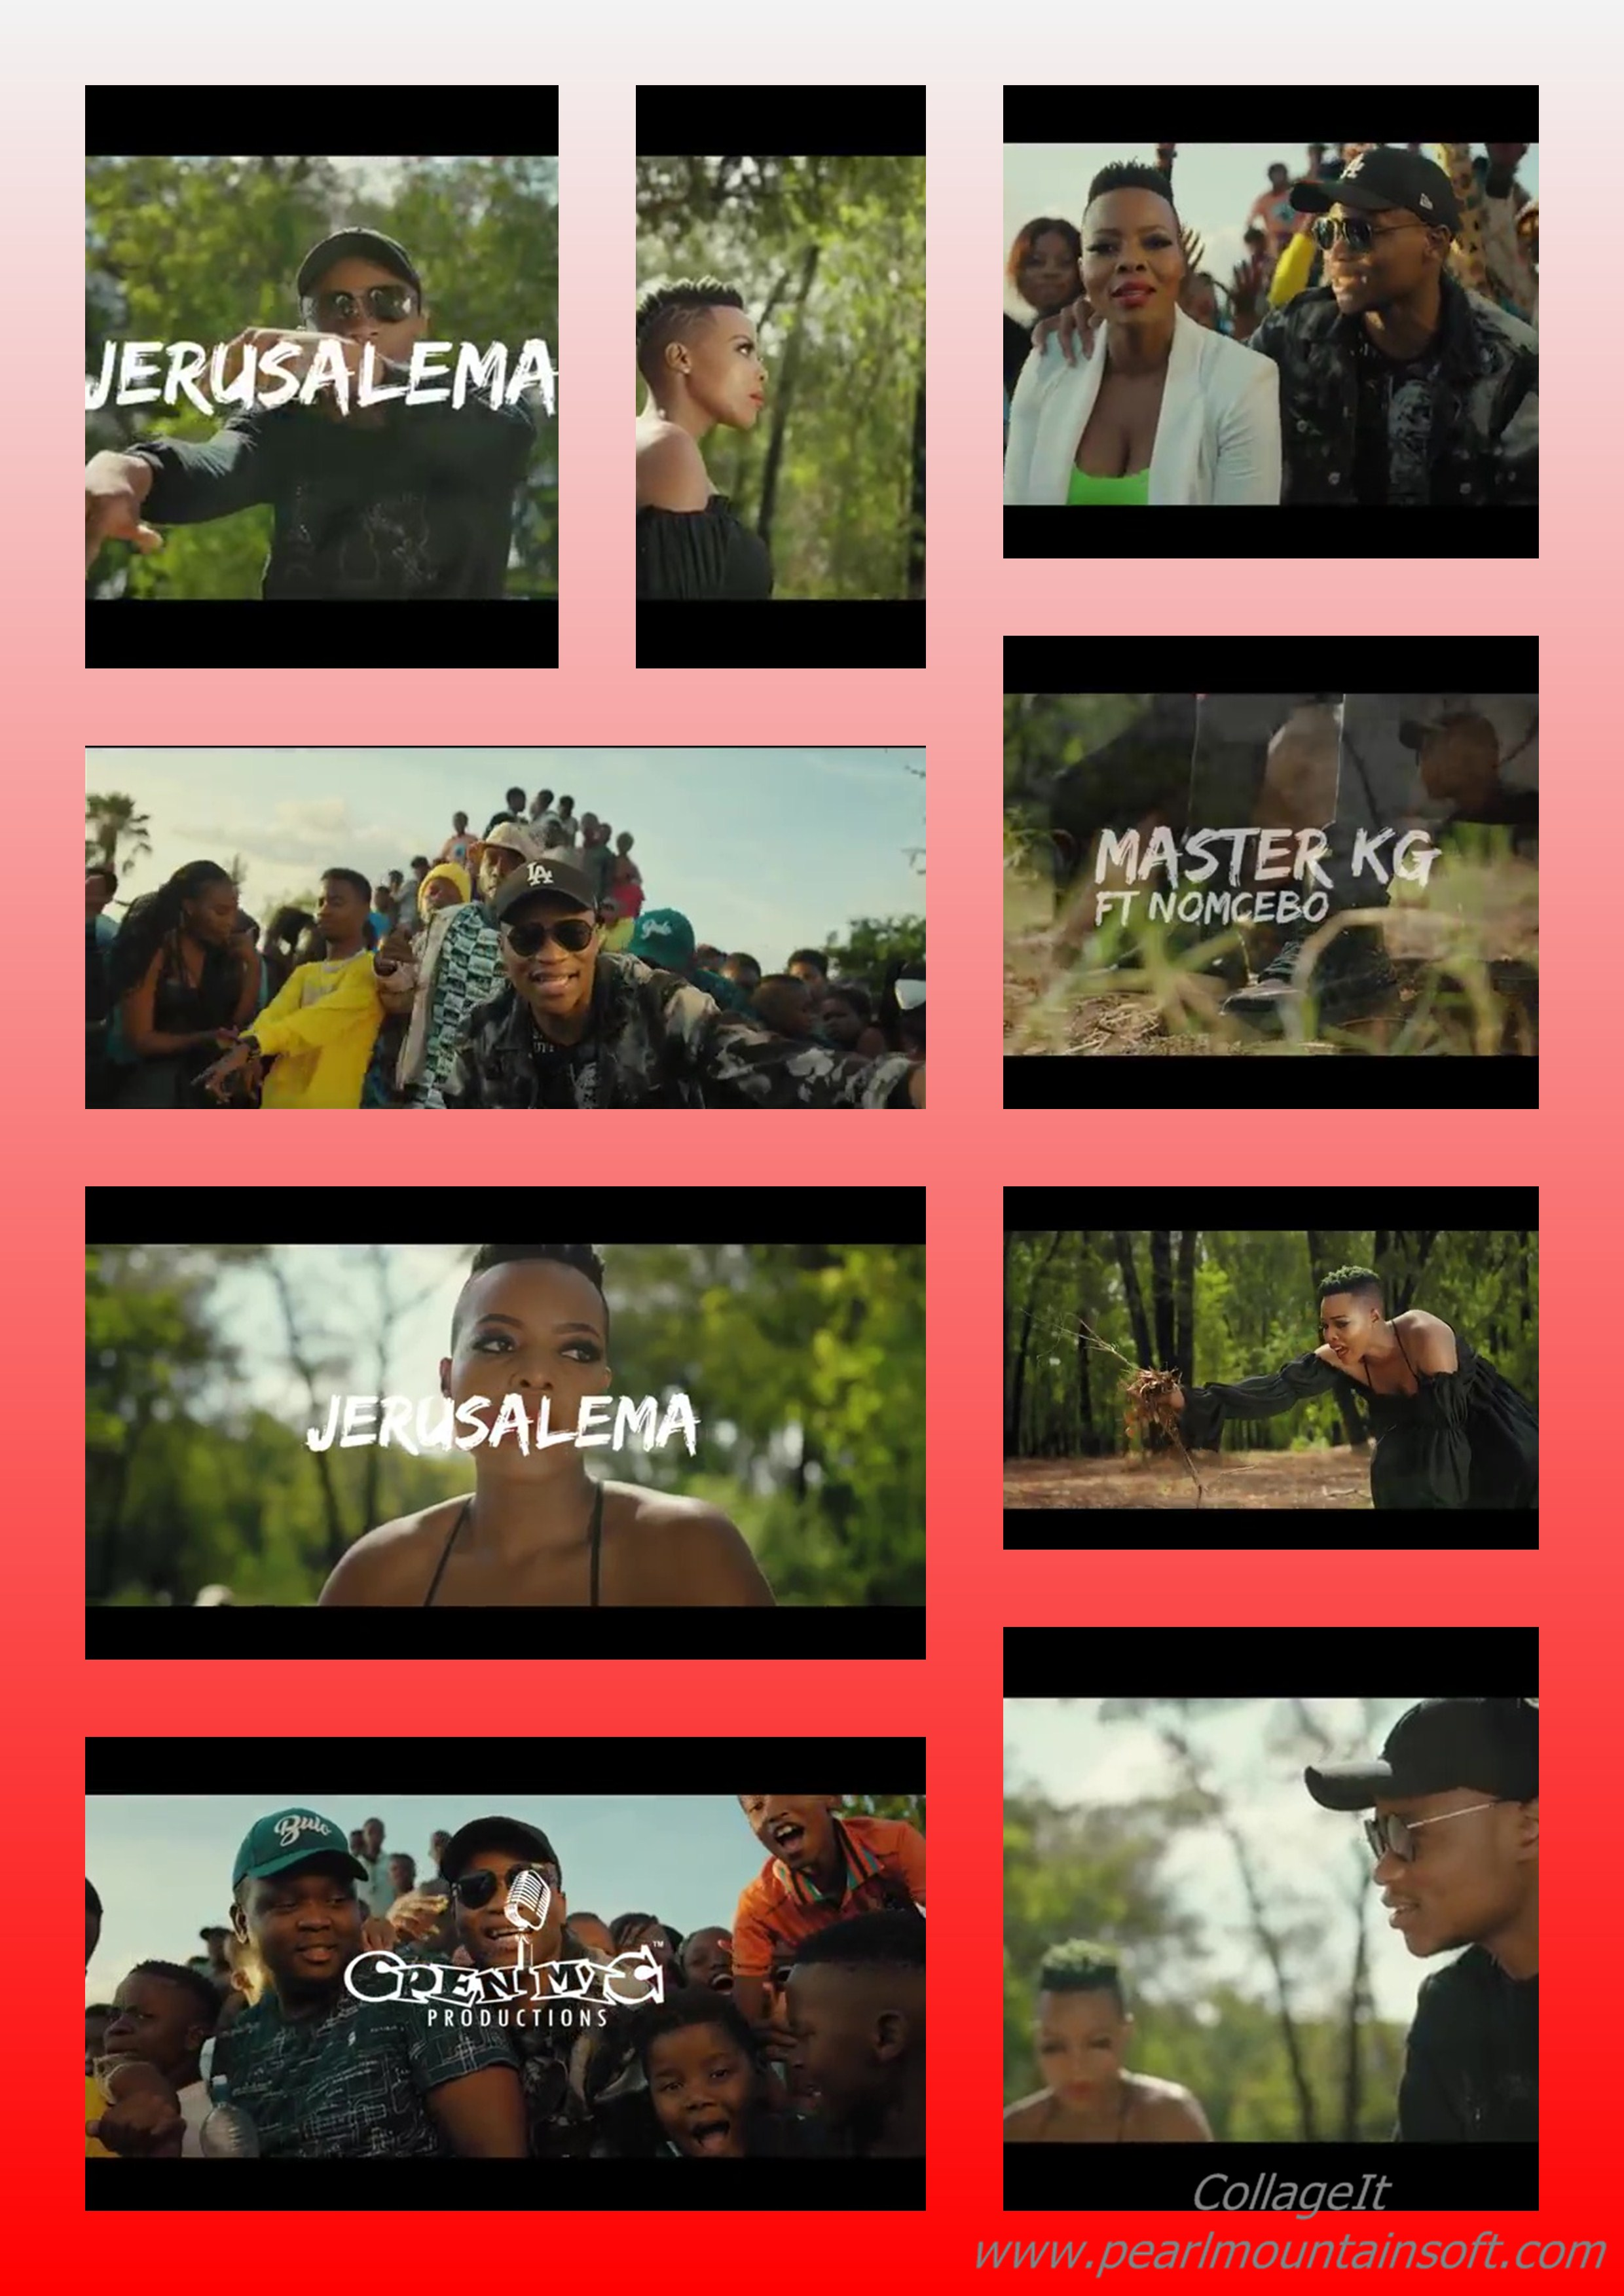 """(+LYRICS+MEANING+TRANSLATION) MUSIC REVIEW- JERUSALEMA BY MASTER KG FT NOMCEBO """"HERE IS THE REAL MEANING OF THE SONG JERUSALEMA!"""" +NOMCEBO'S VOCAL WAS SO…+SOME FACTS ABOUT MASTER KG"""